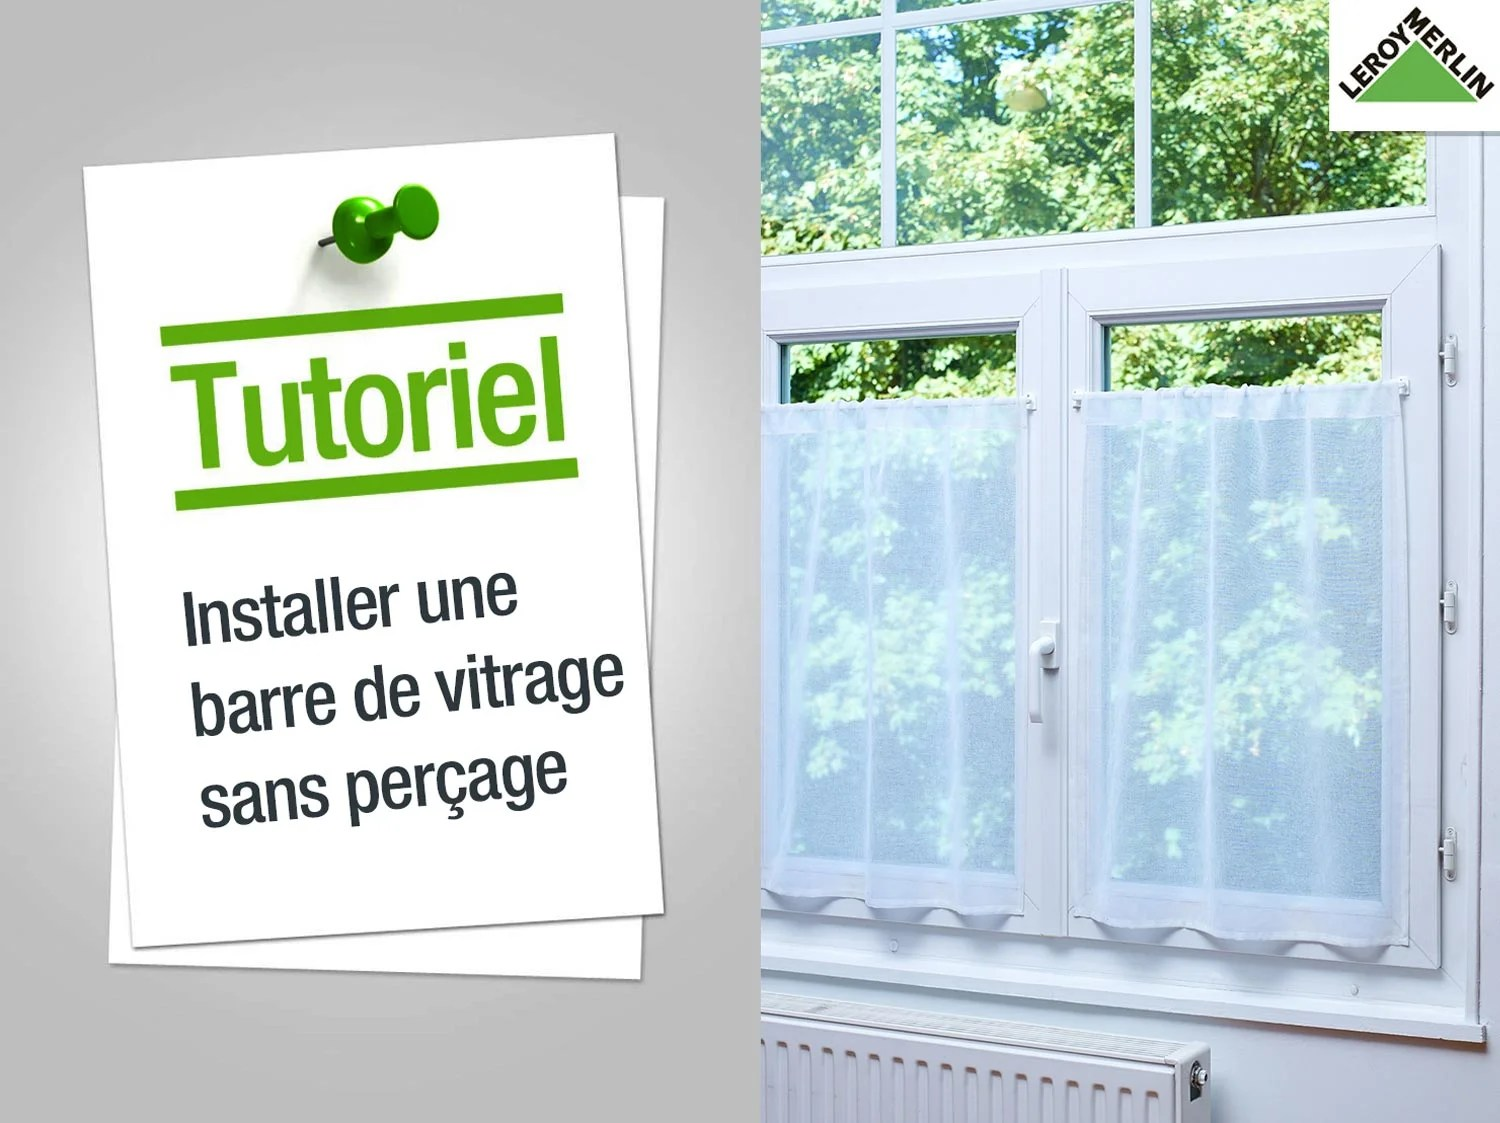 Comment Fixer Un Miroir Sans Percer Excellent Fixation Miroir Sans Percer With Fixation Miroir